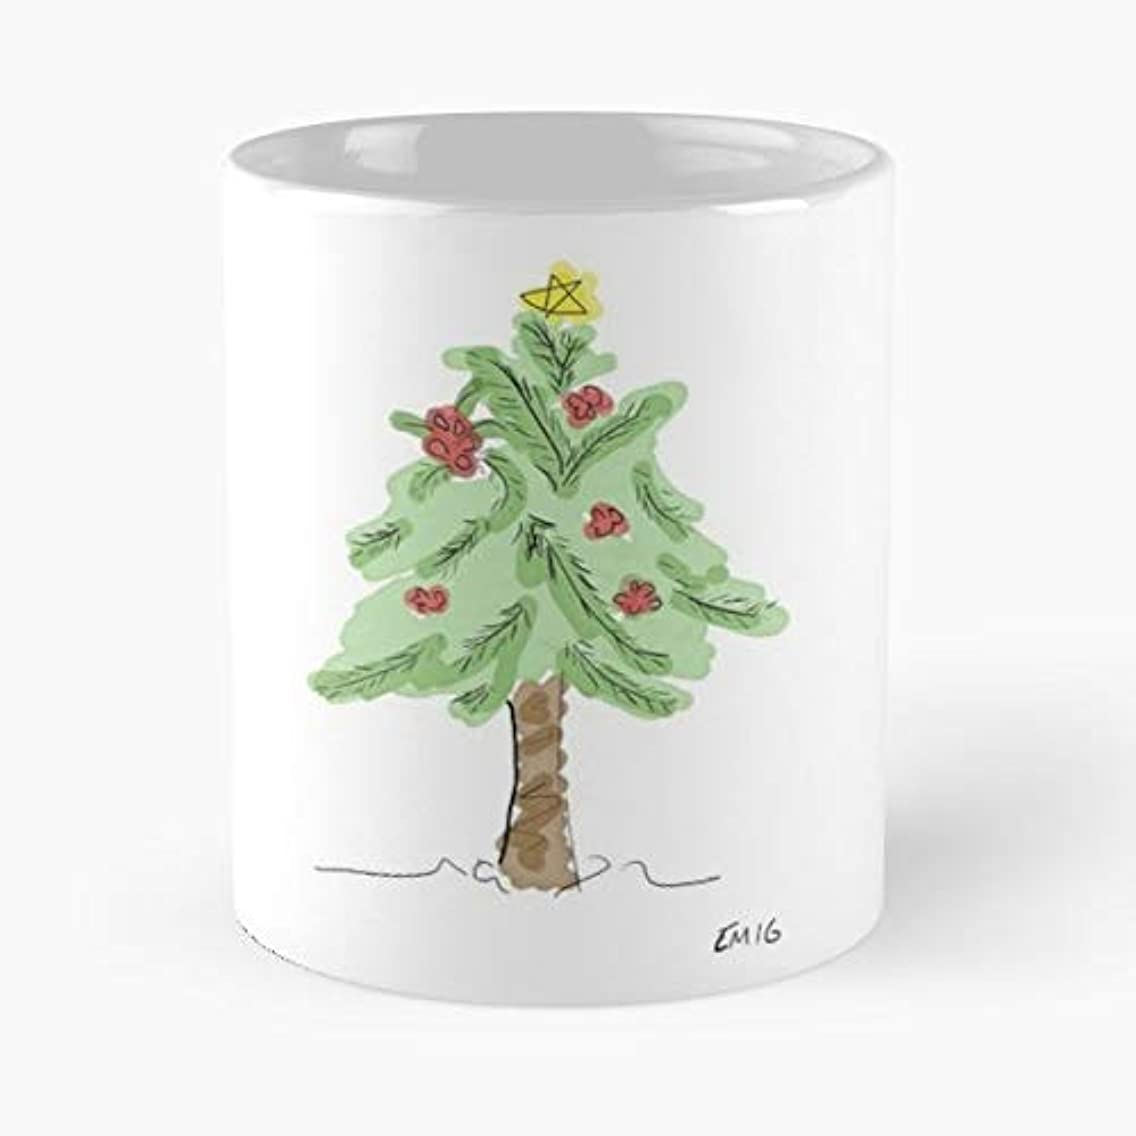 Christmas Tree Merry Baubles -funny Present For My Greatest Boss Male Or Female, Men, Women, Great Office Gift Mugs, Birthday, Leaving, Bold, Cup, 11 Oz